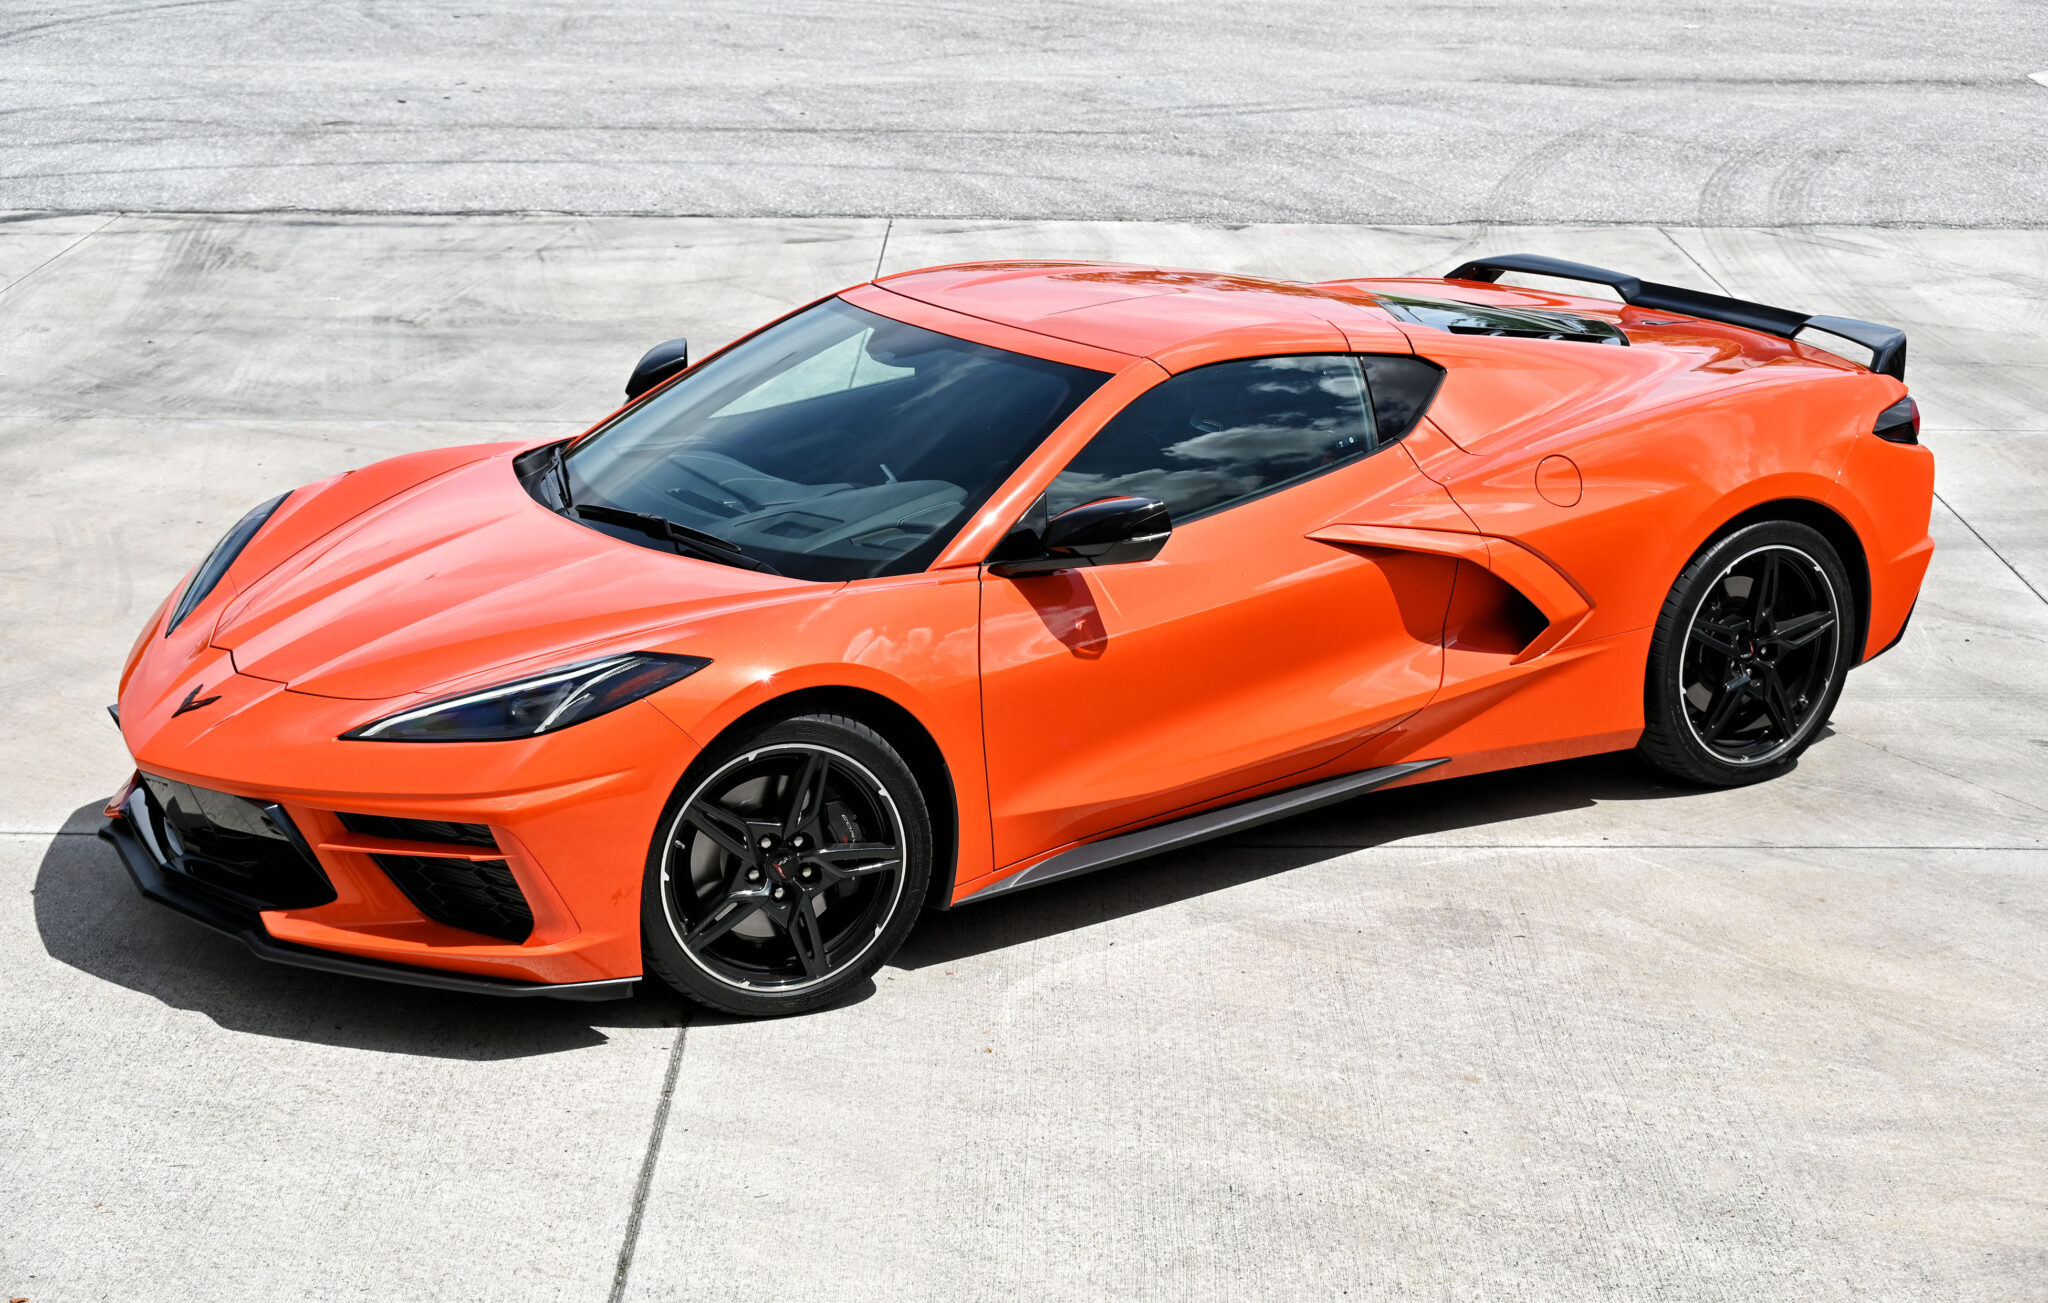 THE NEW 2020 CORVETTE STINGRAY MID-ENGINE COUPE